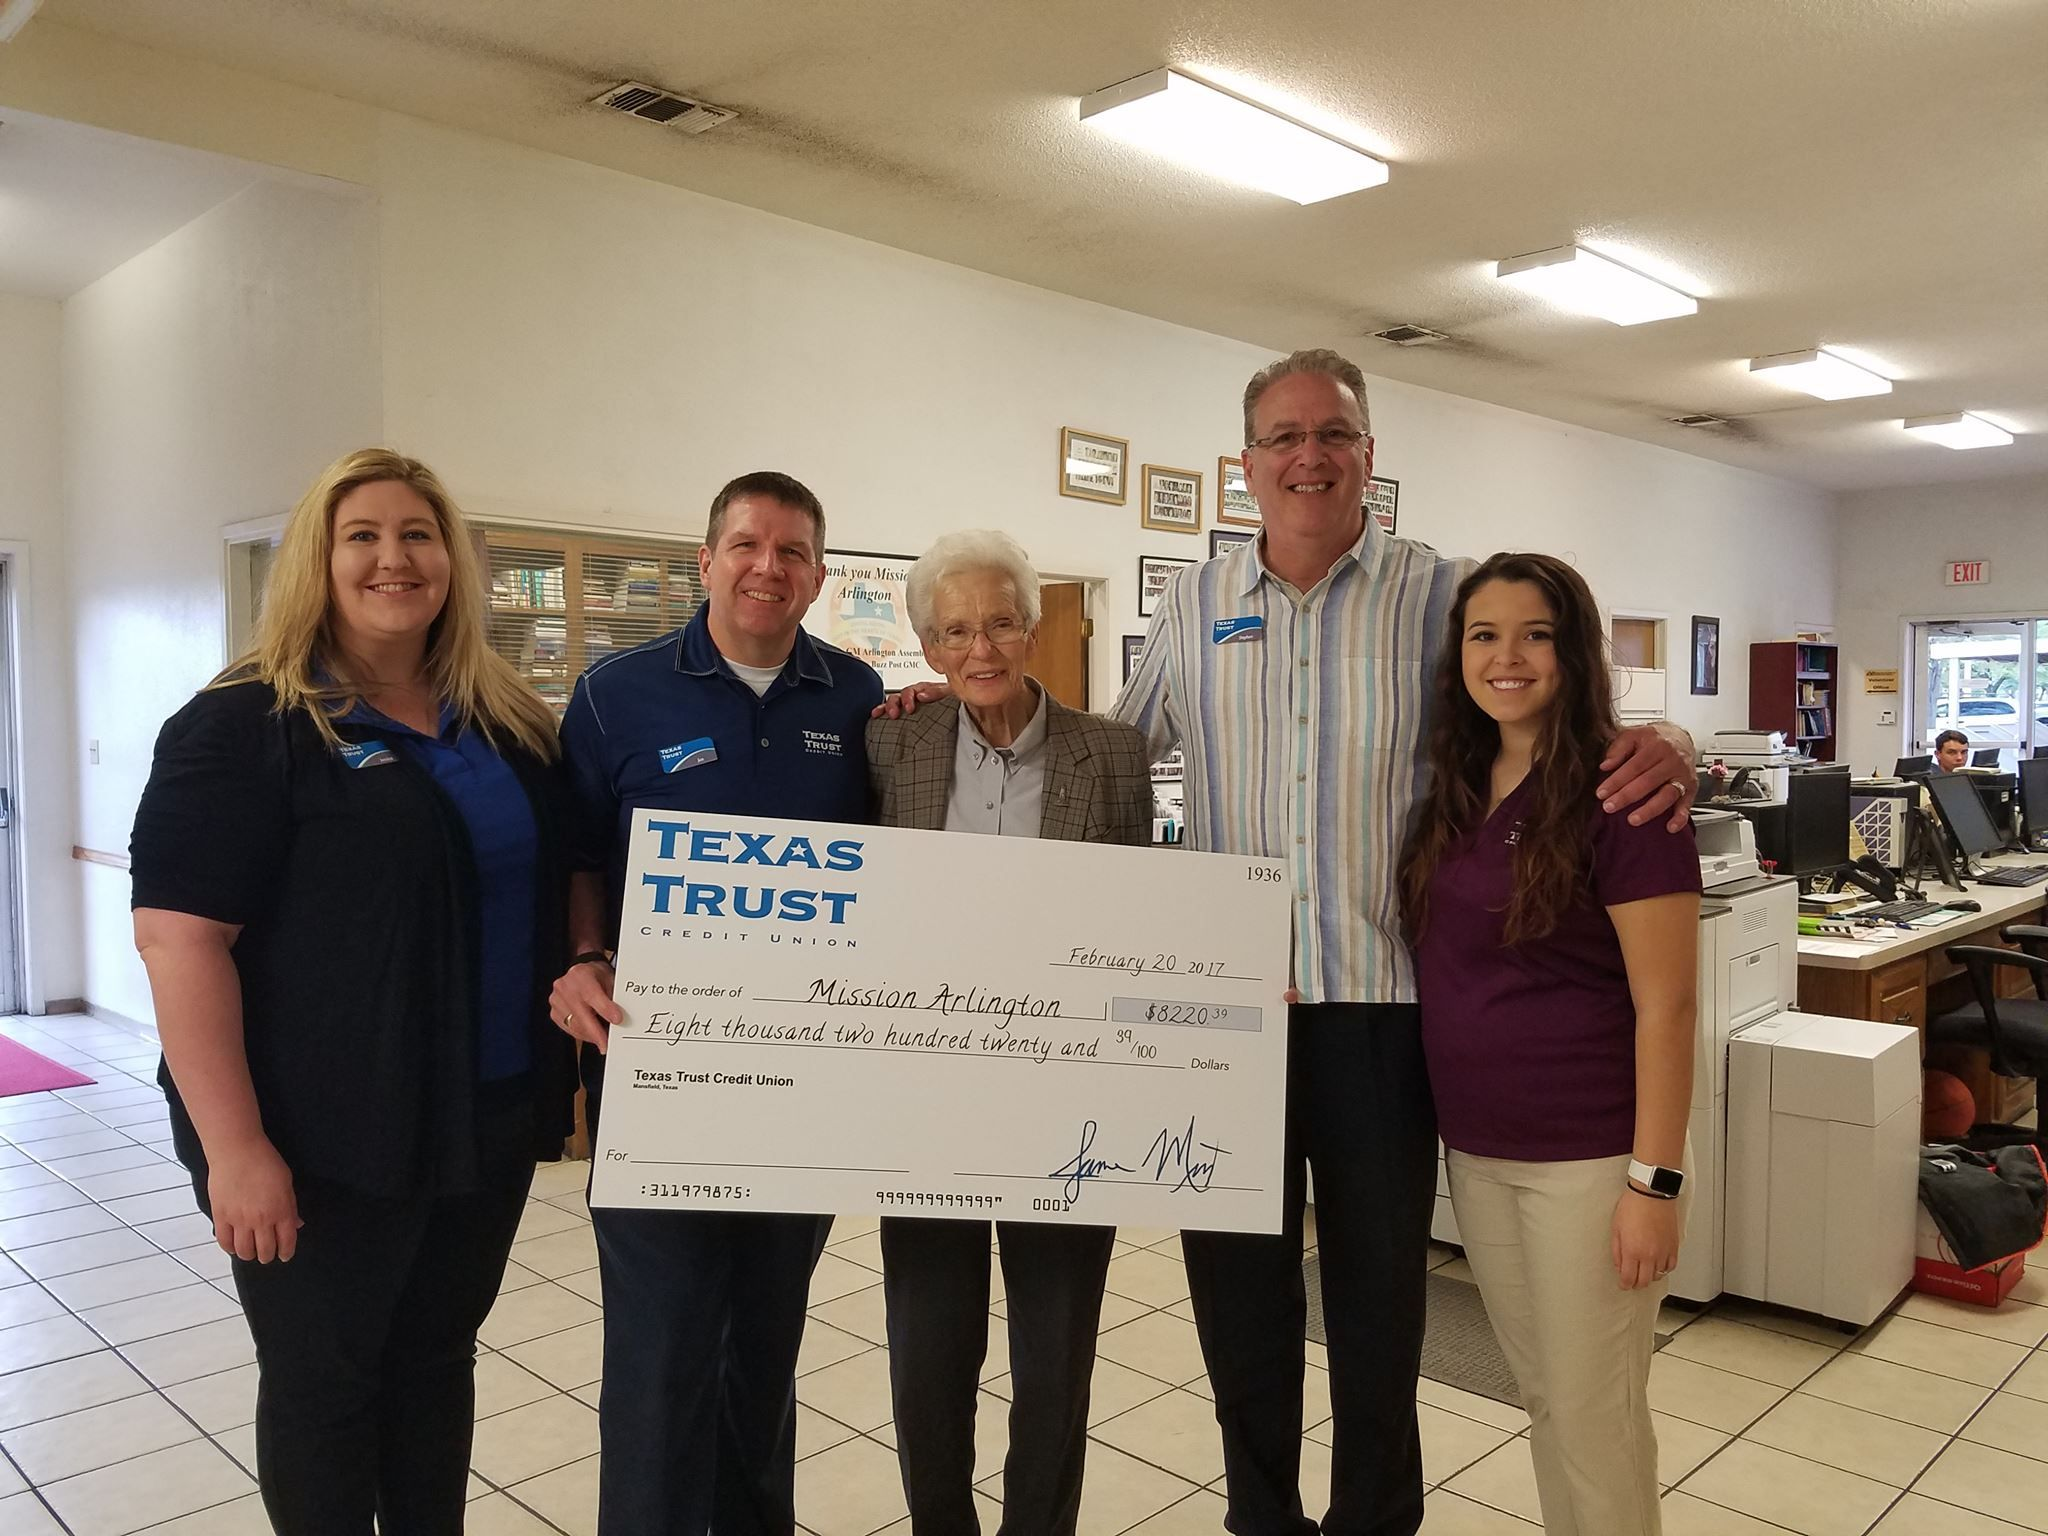 Pin on texas trust in your community